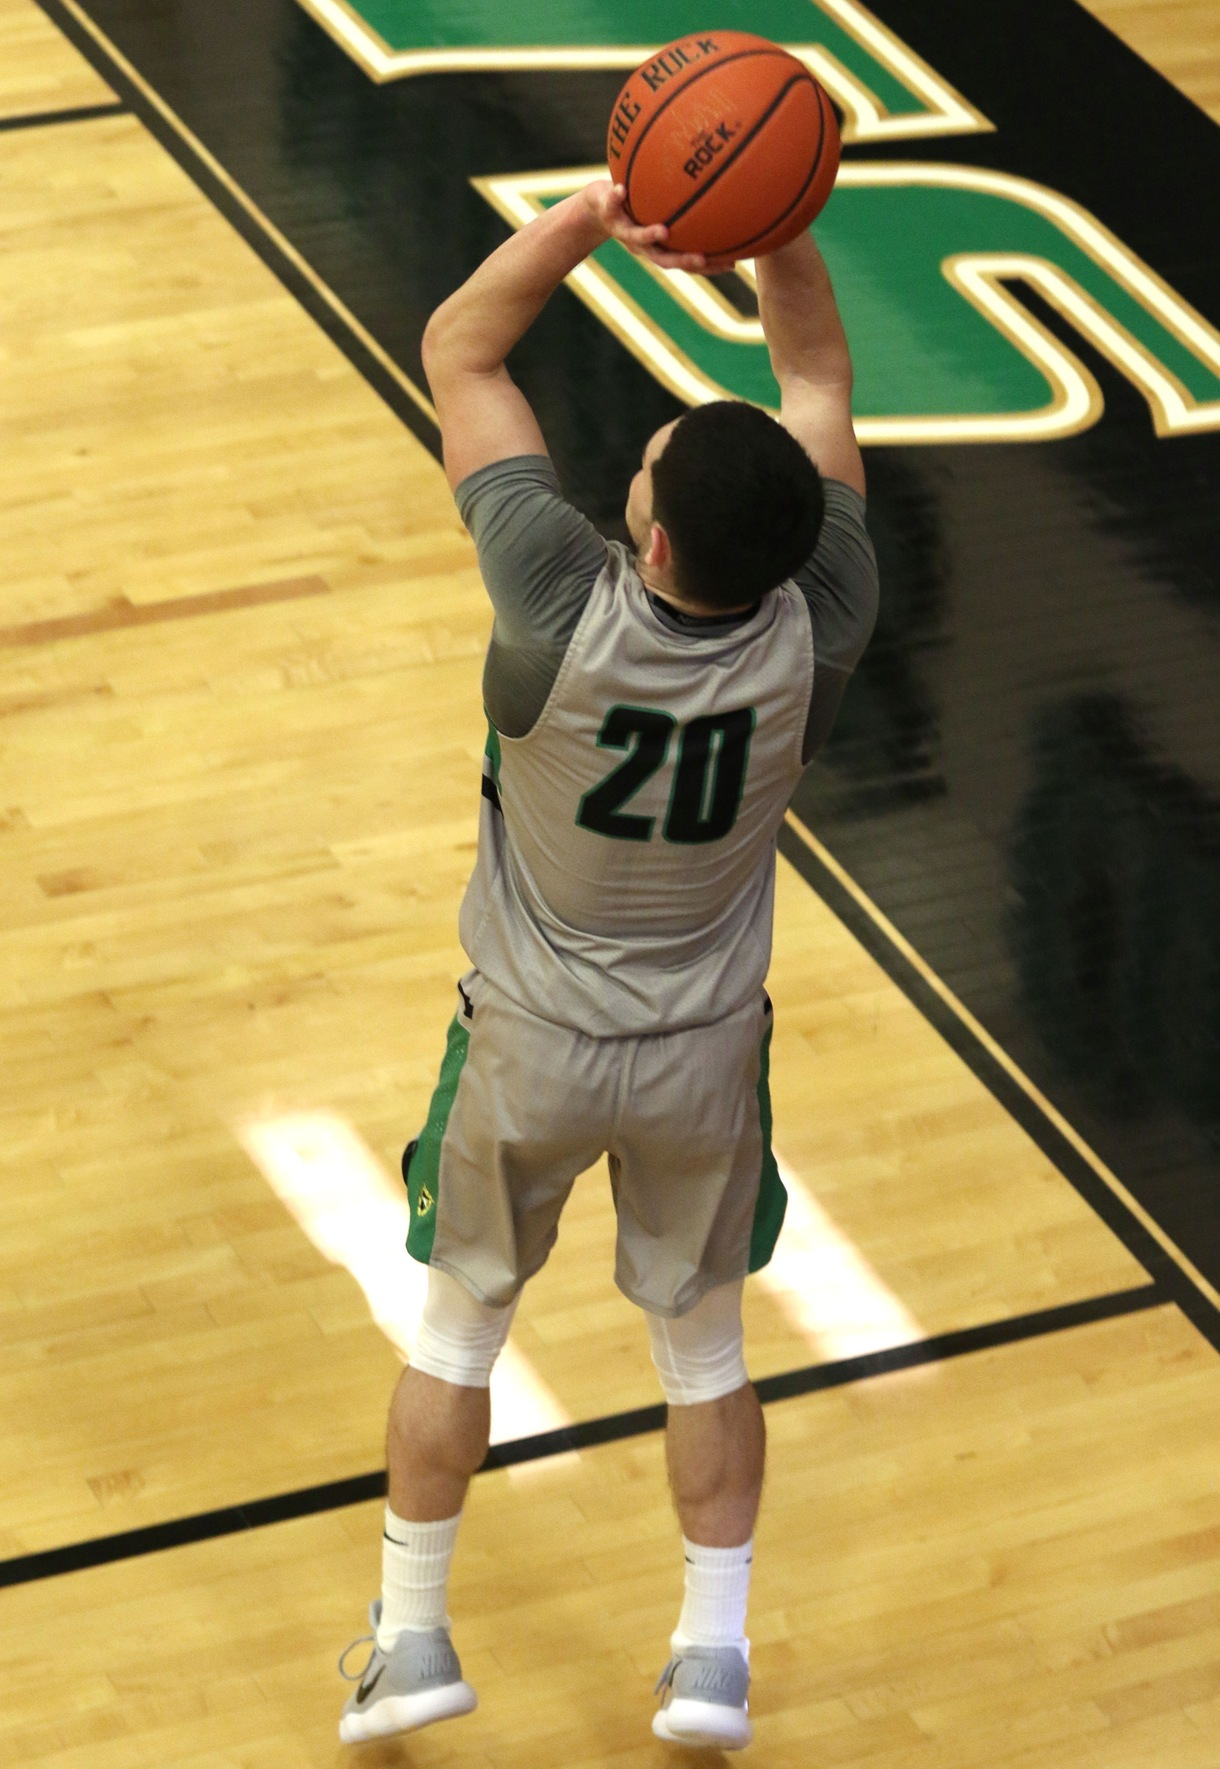 Copyright 2017; Wilmington University. All rights reserved. Photo of Danny Walsh knocking down the game-winner against No. 19 Shippensburg, taken by Frank Stallworth. November 22, 2017.